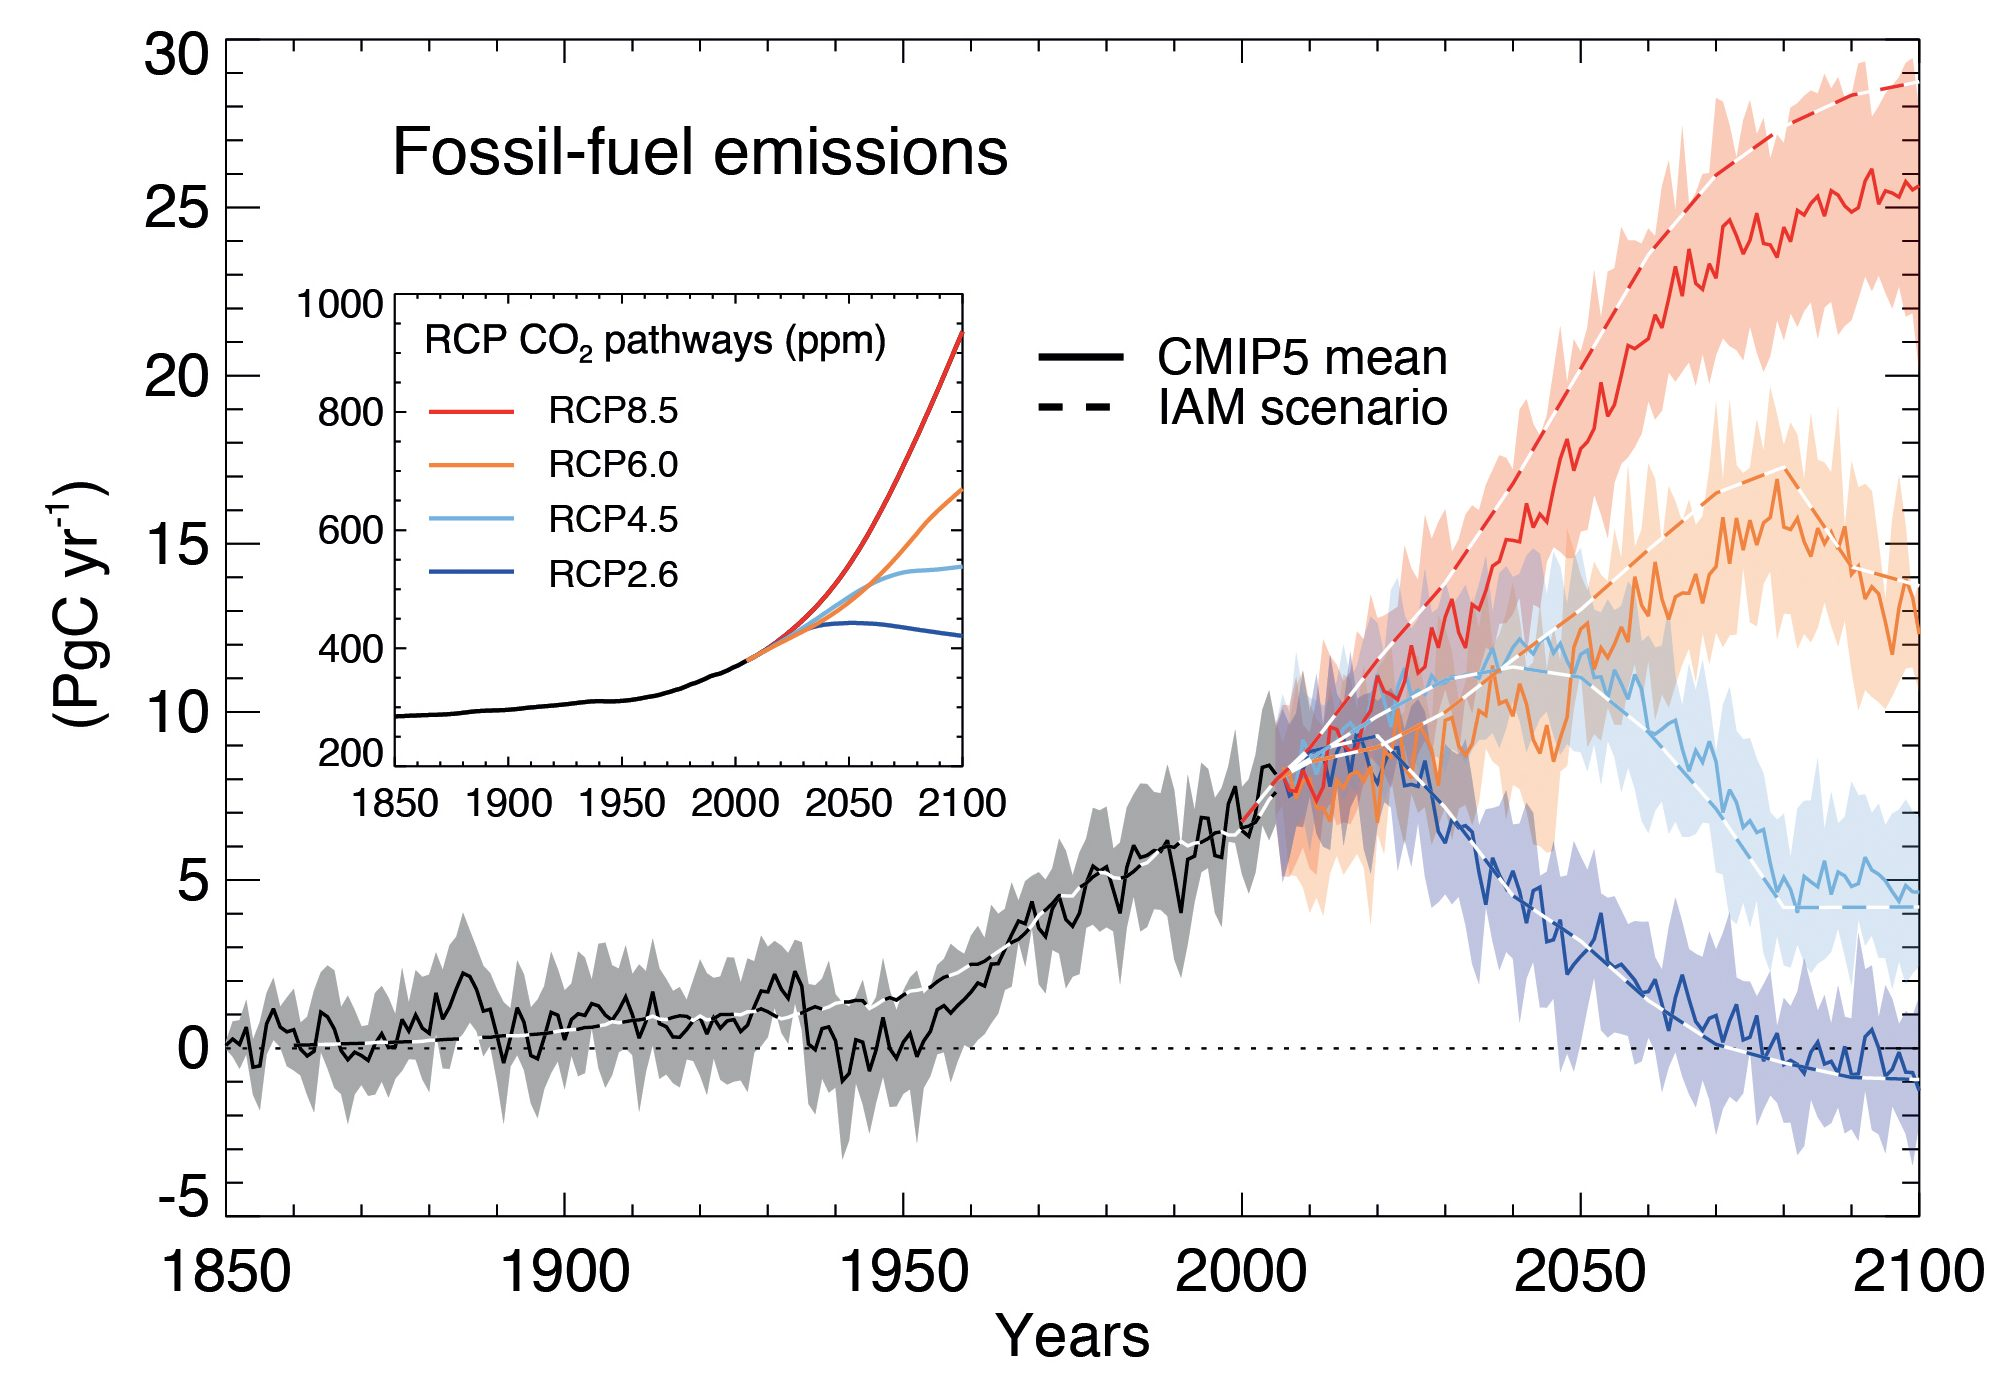 Evolution of CO2 emissions and concentrations (inset) for RCP scenarios. Emissions are calculated from simple carbon cycle box models given the CO2 concentrations. Uncertainties in these calculations are indicated by the shading and the two different lines labeled CMIP5 mean and IAM scenario. From ipcc.ch.